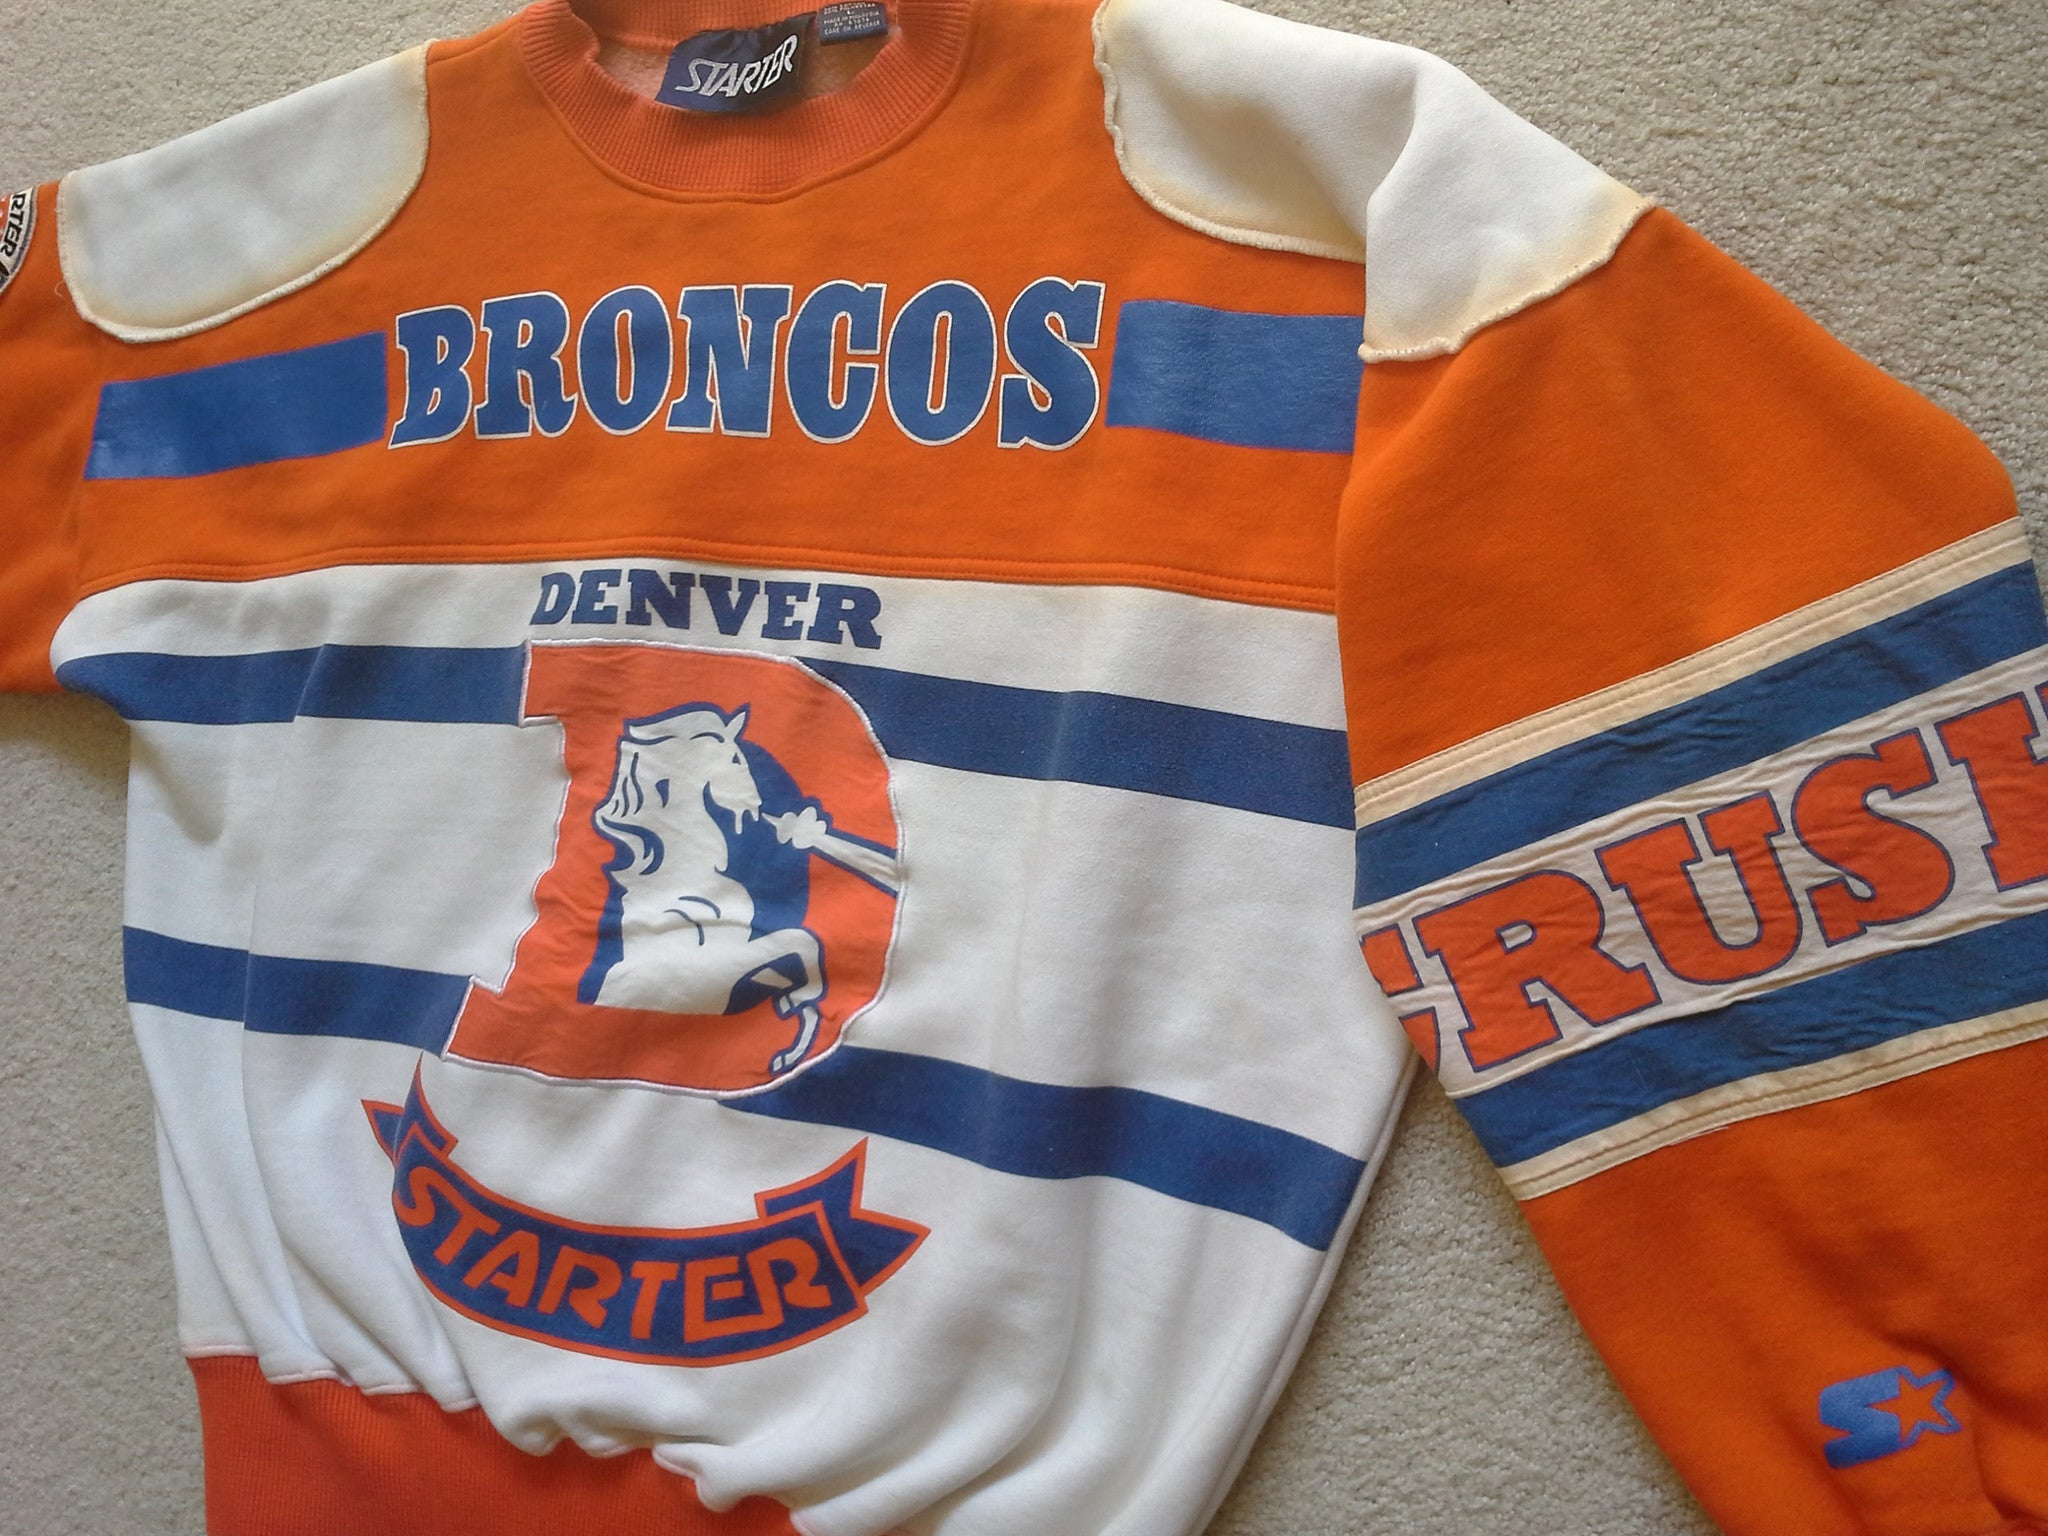 cheaper 271a0 a376a Vintage RARE Denver Broncos 80s graphic sweatshirt by Starter - L